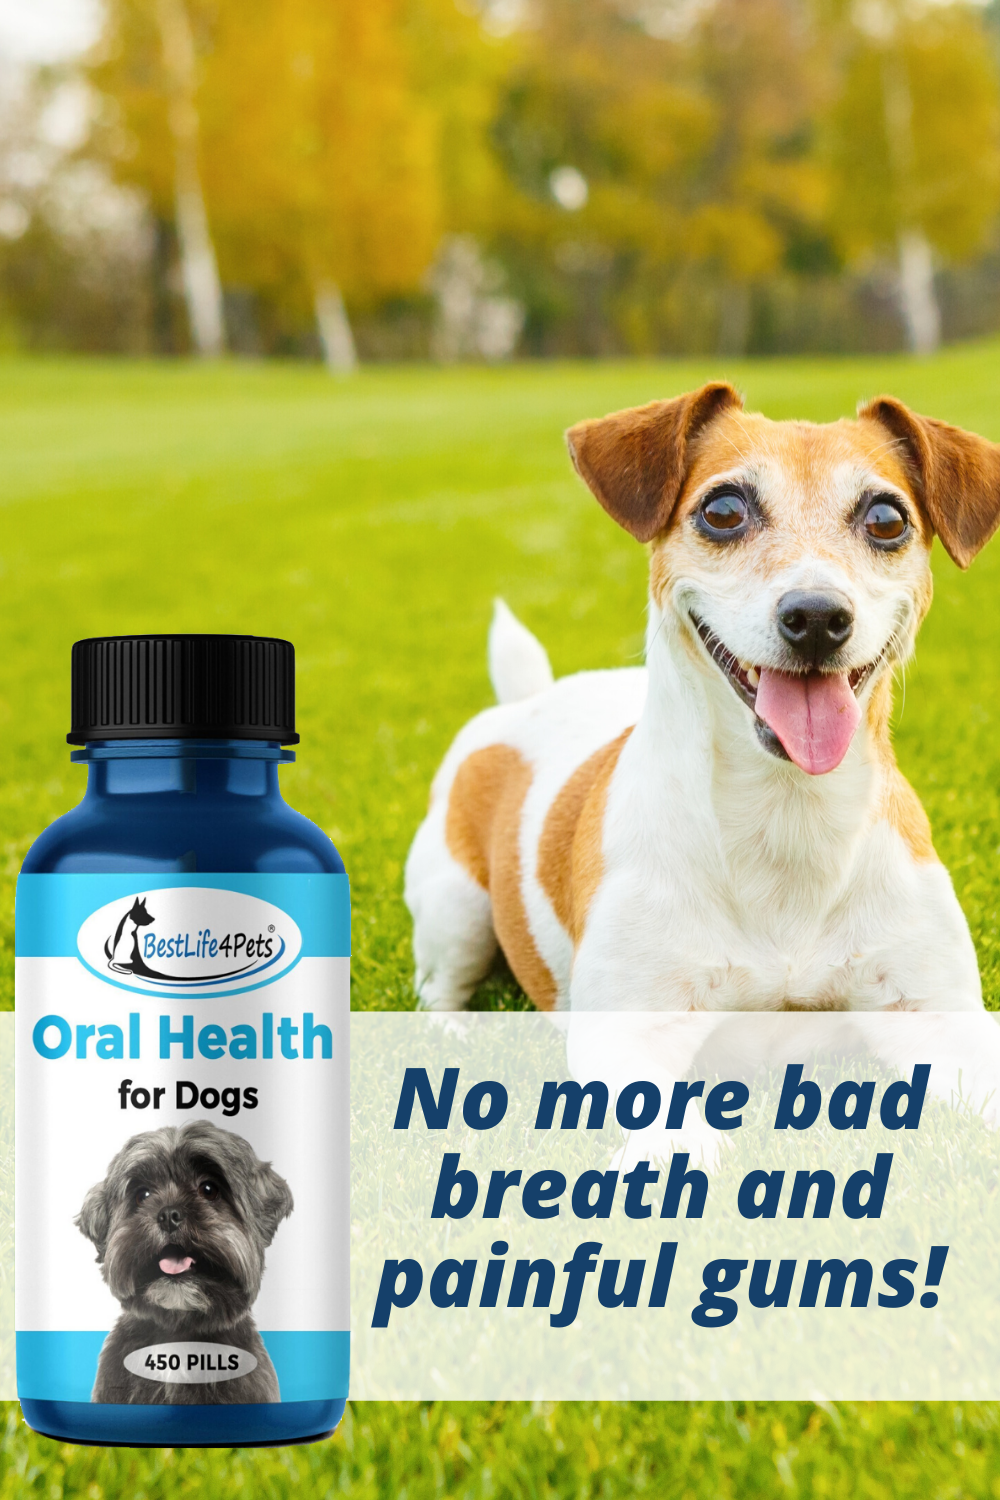 Oral Health For Dogs Helps Gingivitis Bad Breath And Periodontal Disease 450 Pills In 2020 Oral Health Periodontitis Periodontal Disease